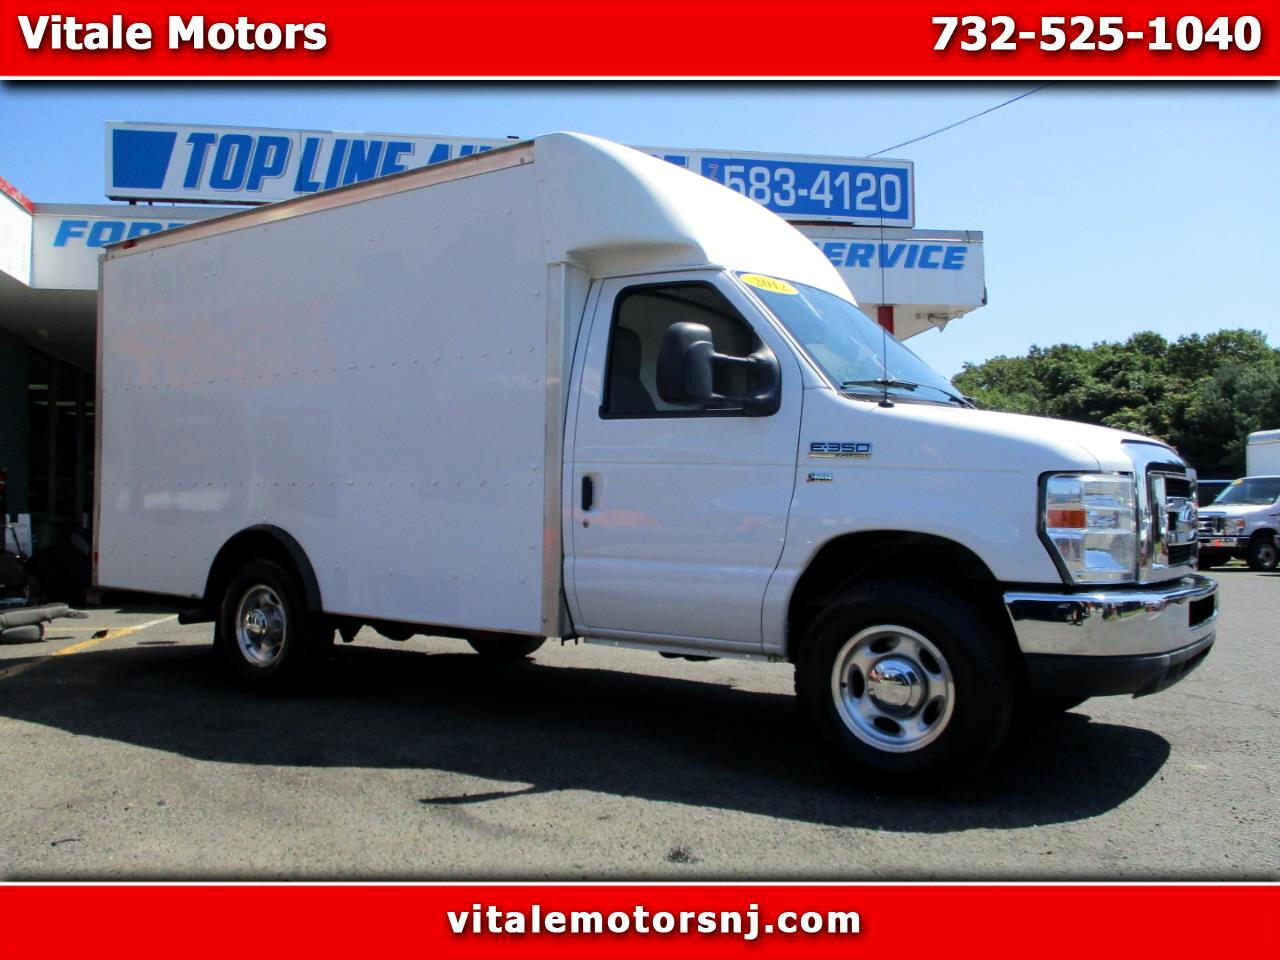 2012 Ford Econoline E-350 12 FOOT BOX TRUCK W/ POWER INVERTER